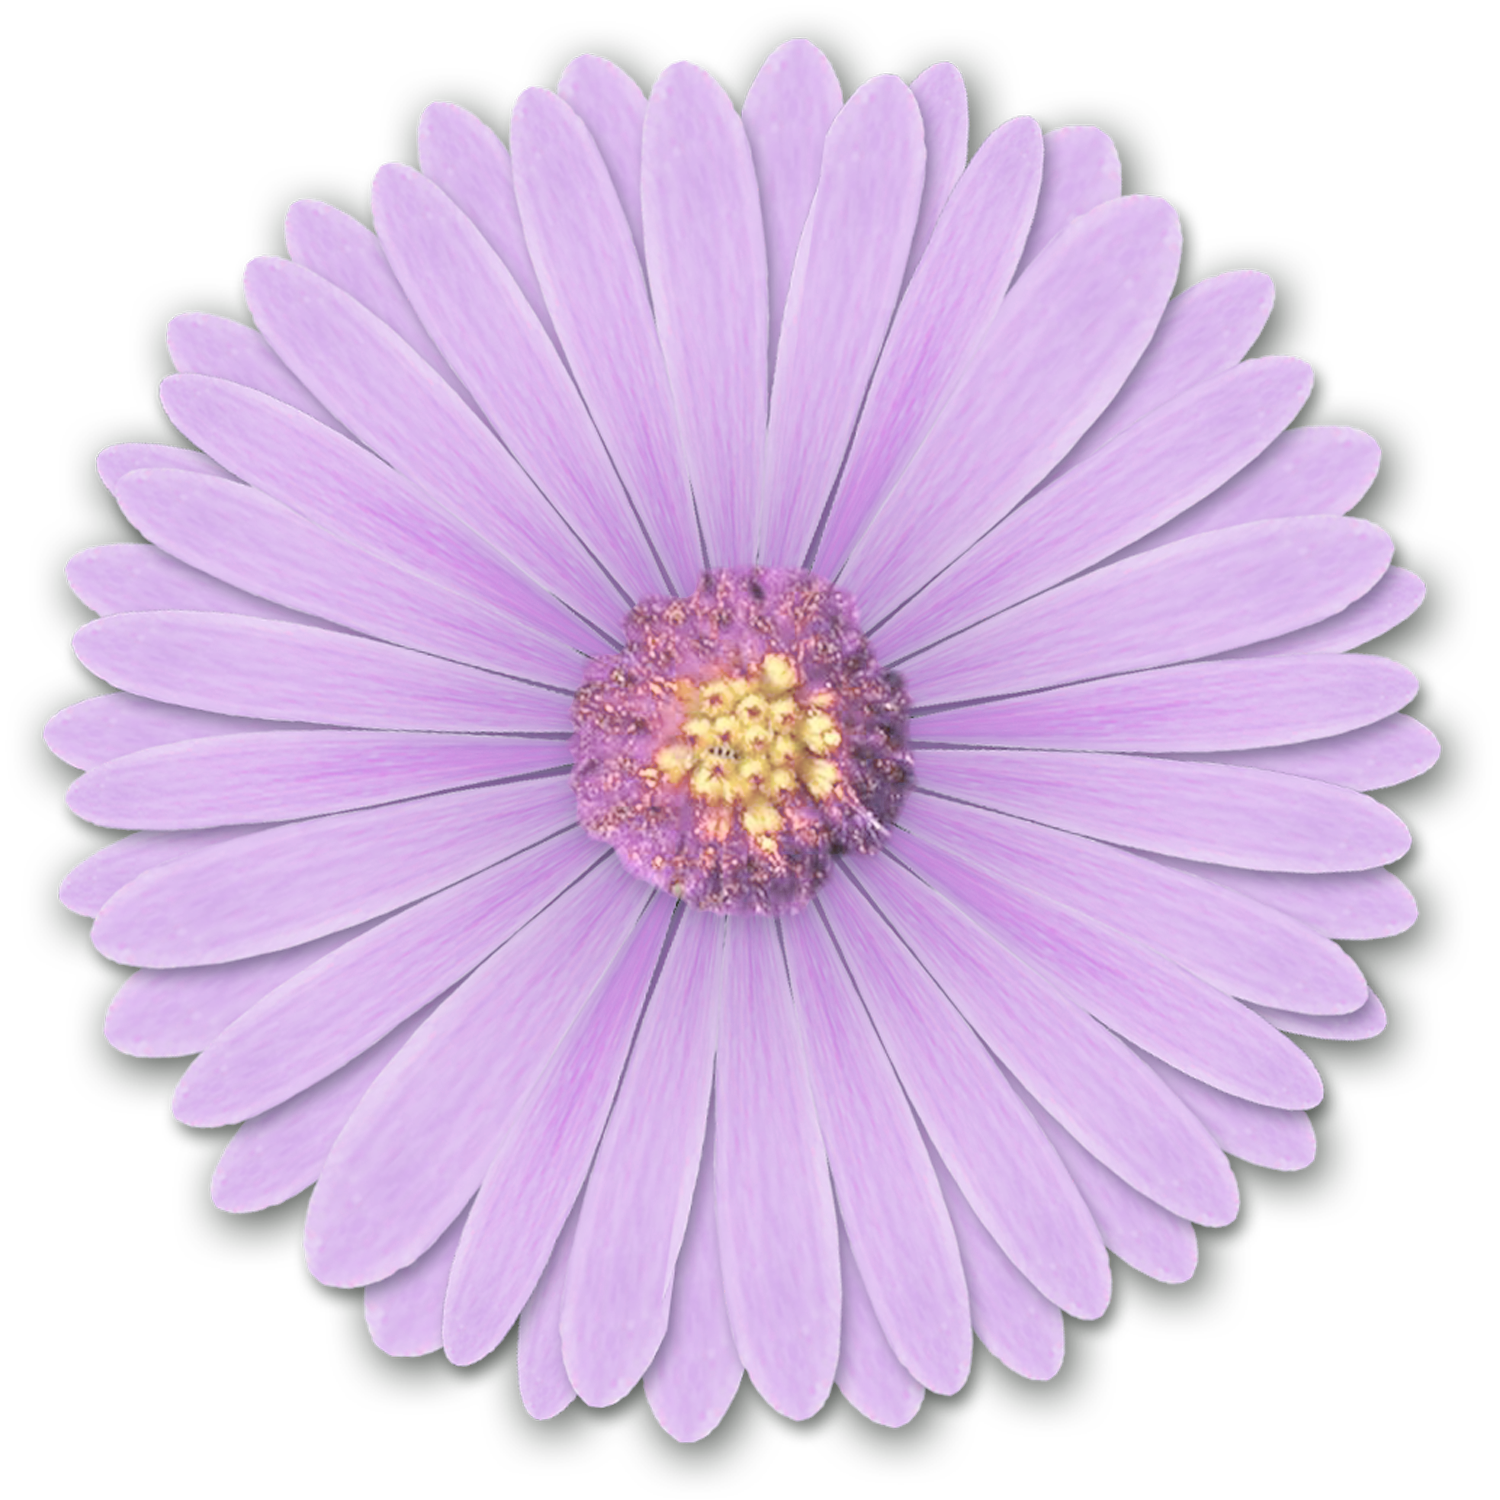 Realistic flower png. Res light purple flowers